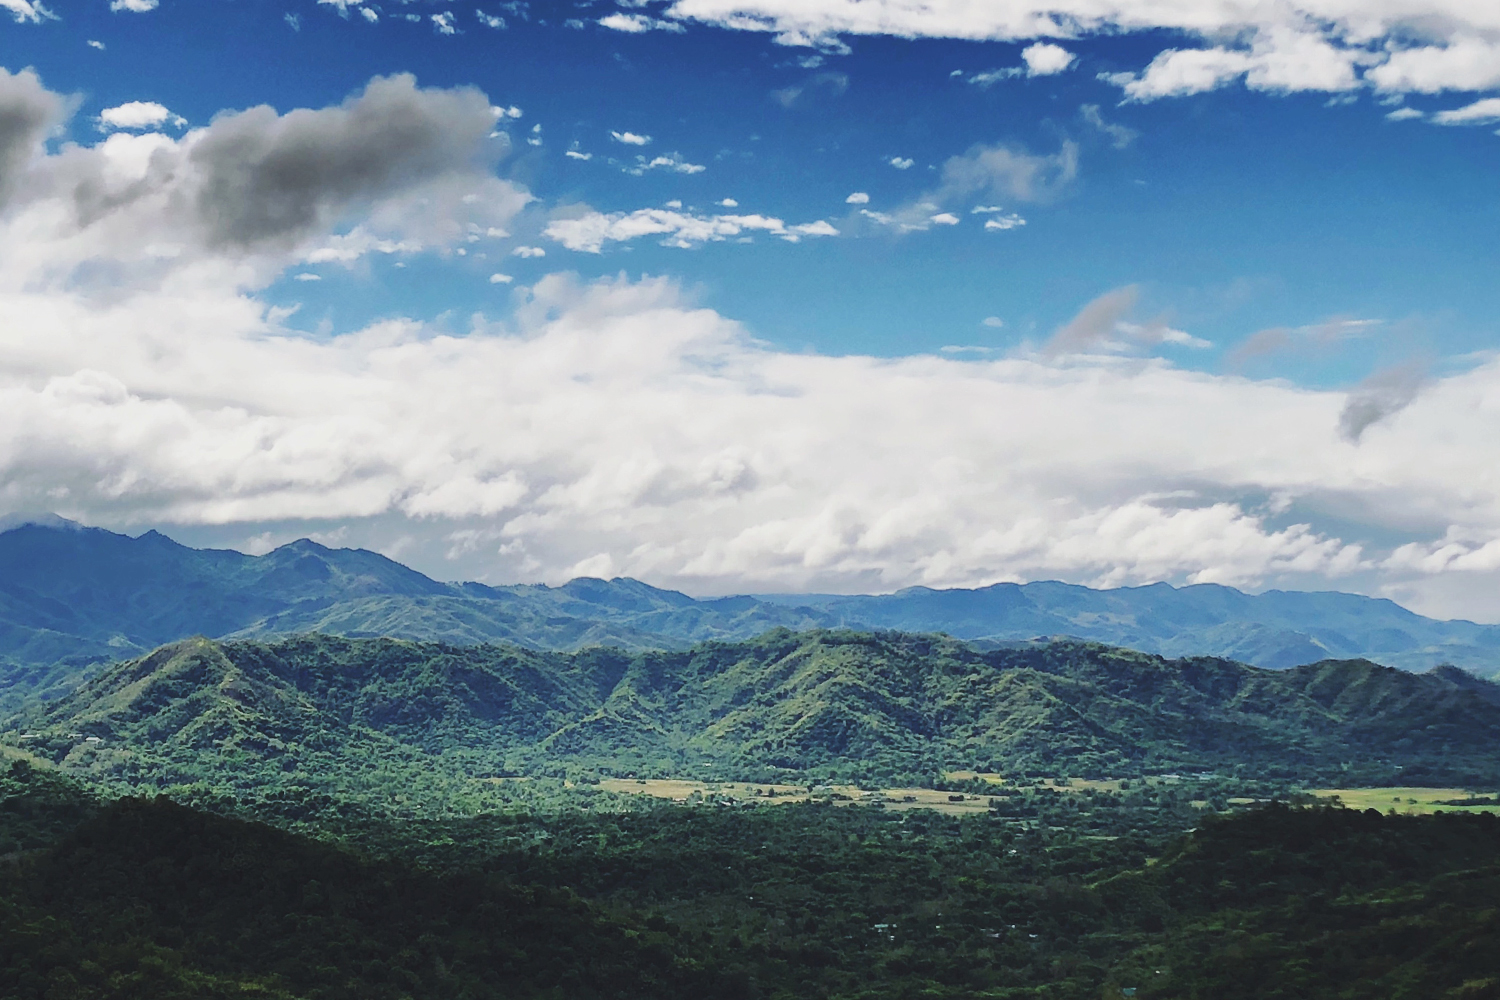 Landscape photo of the Sierra Madre mountain range